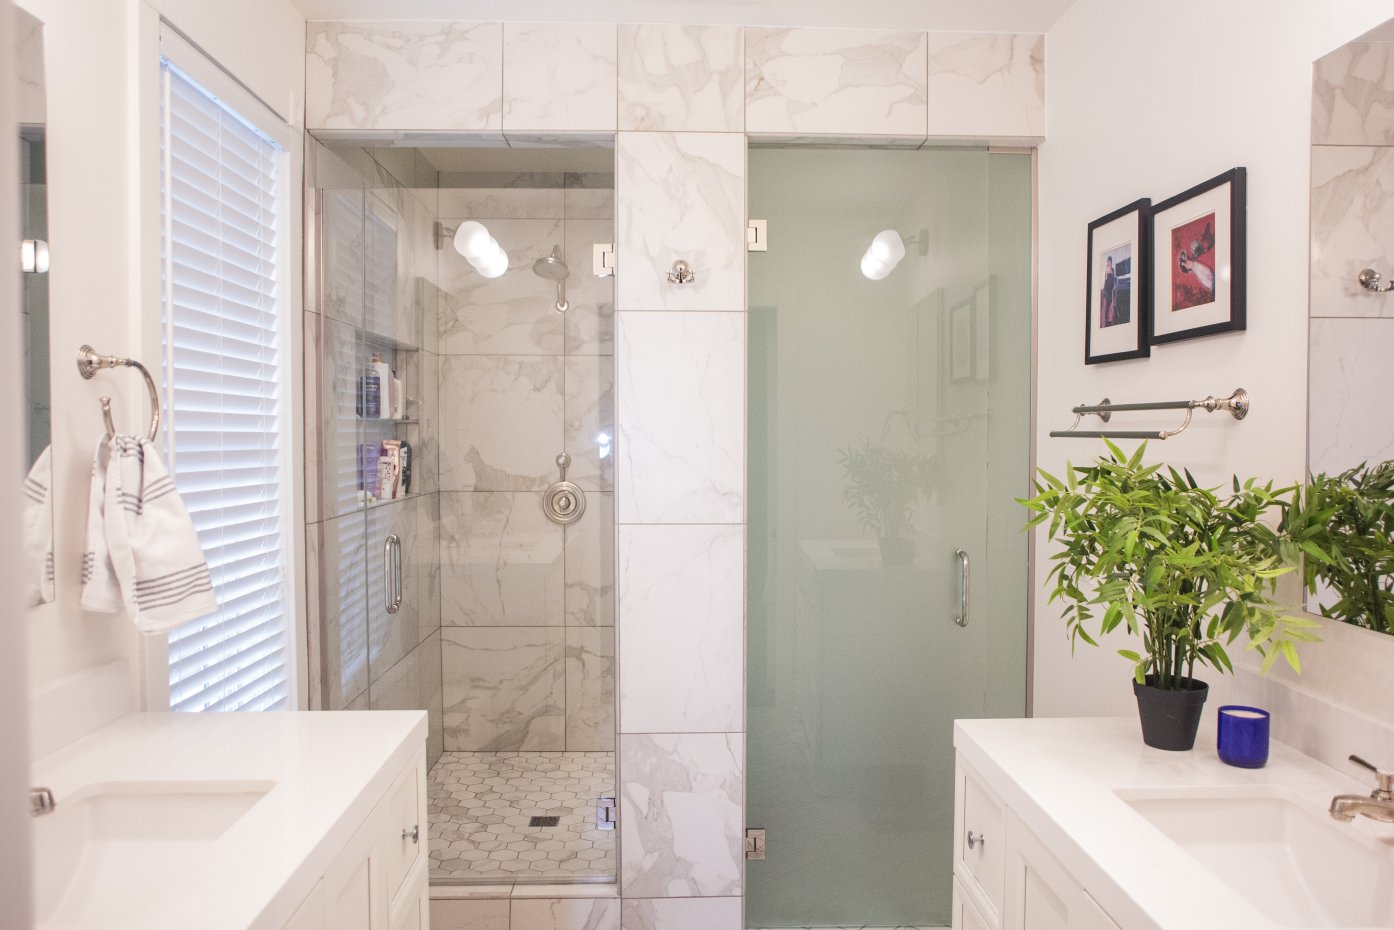 Bathroom Remodel by Twice the Measure